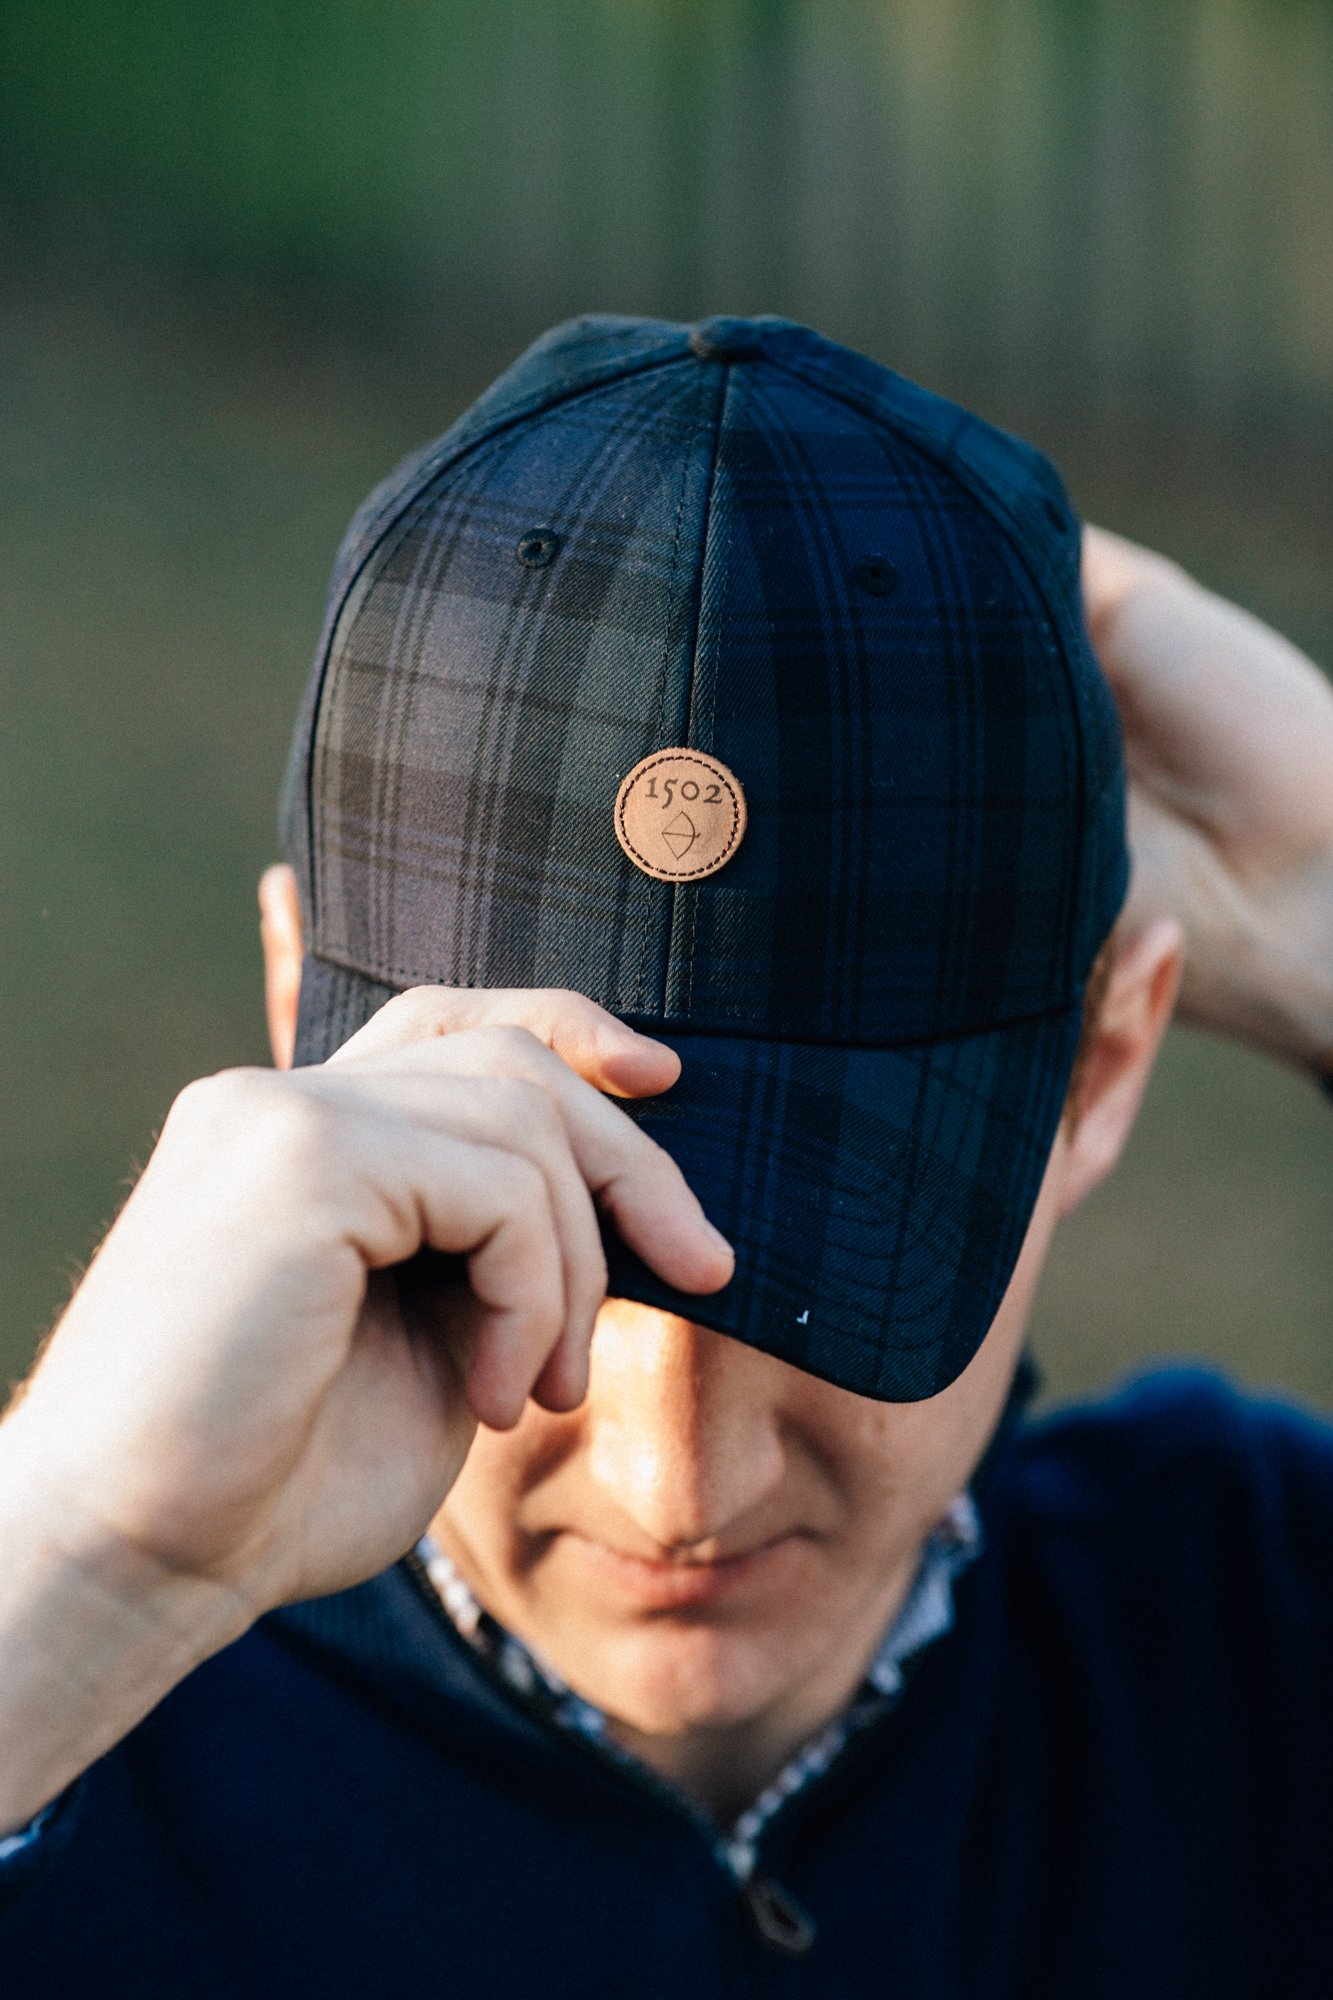 Classic Golf Hat, Black Watch Plaid 1502 Design, Adjustable Hat & Leather Strap